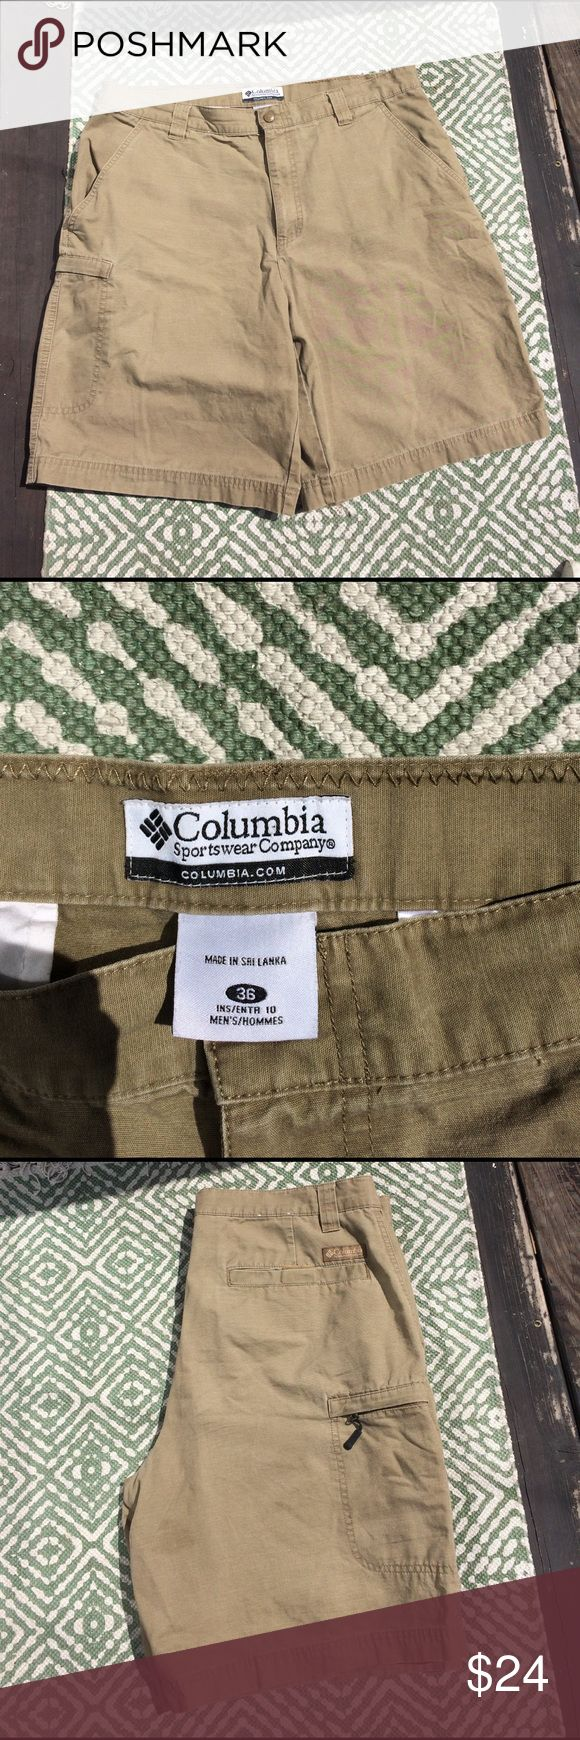 Columbia sportswear shorts EUC sz 36 💯 cotton ❤️Columbia sportswear khaki/beige shorts EUC sz 36 💯 cotton. Two pockets in front and back and one pocket on the hip with zipper Columbia Shorts Cargo